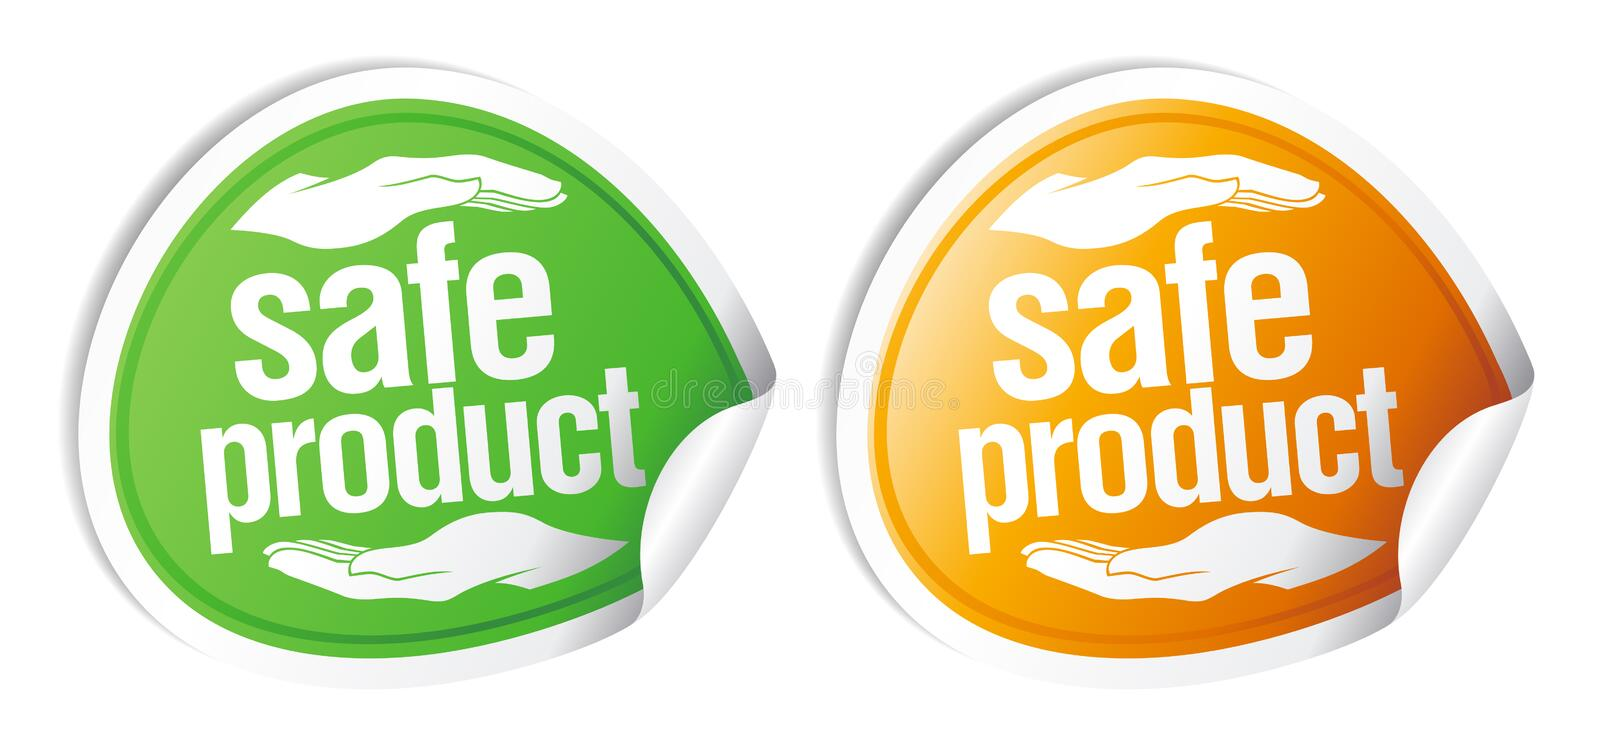 Safe product stickers. royalty free illustration